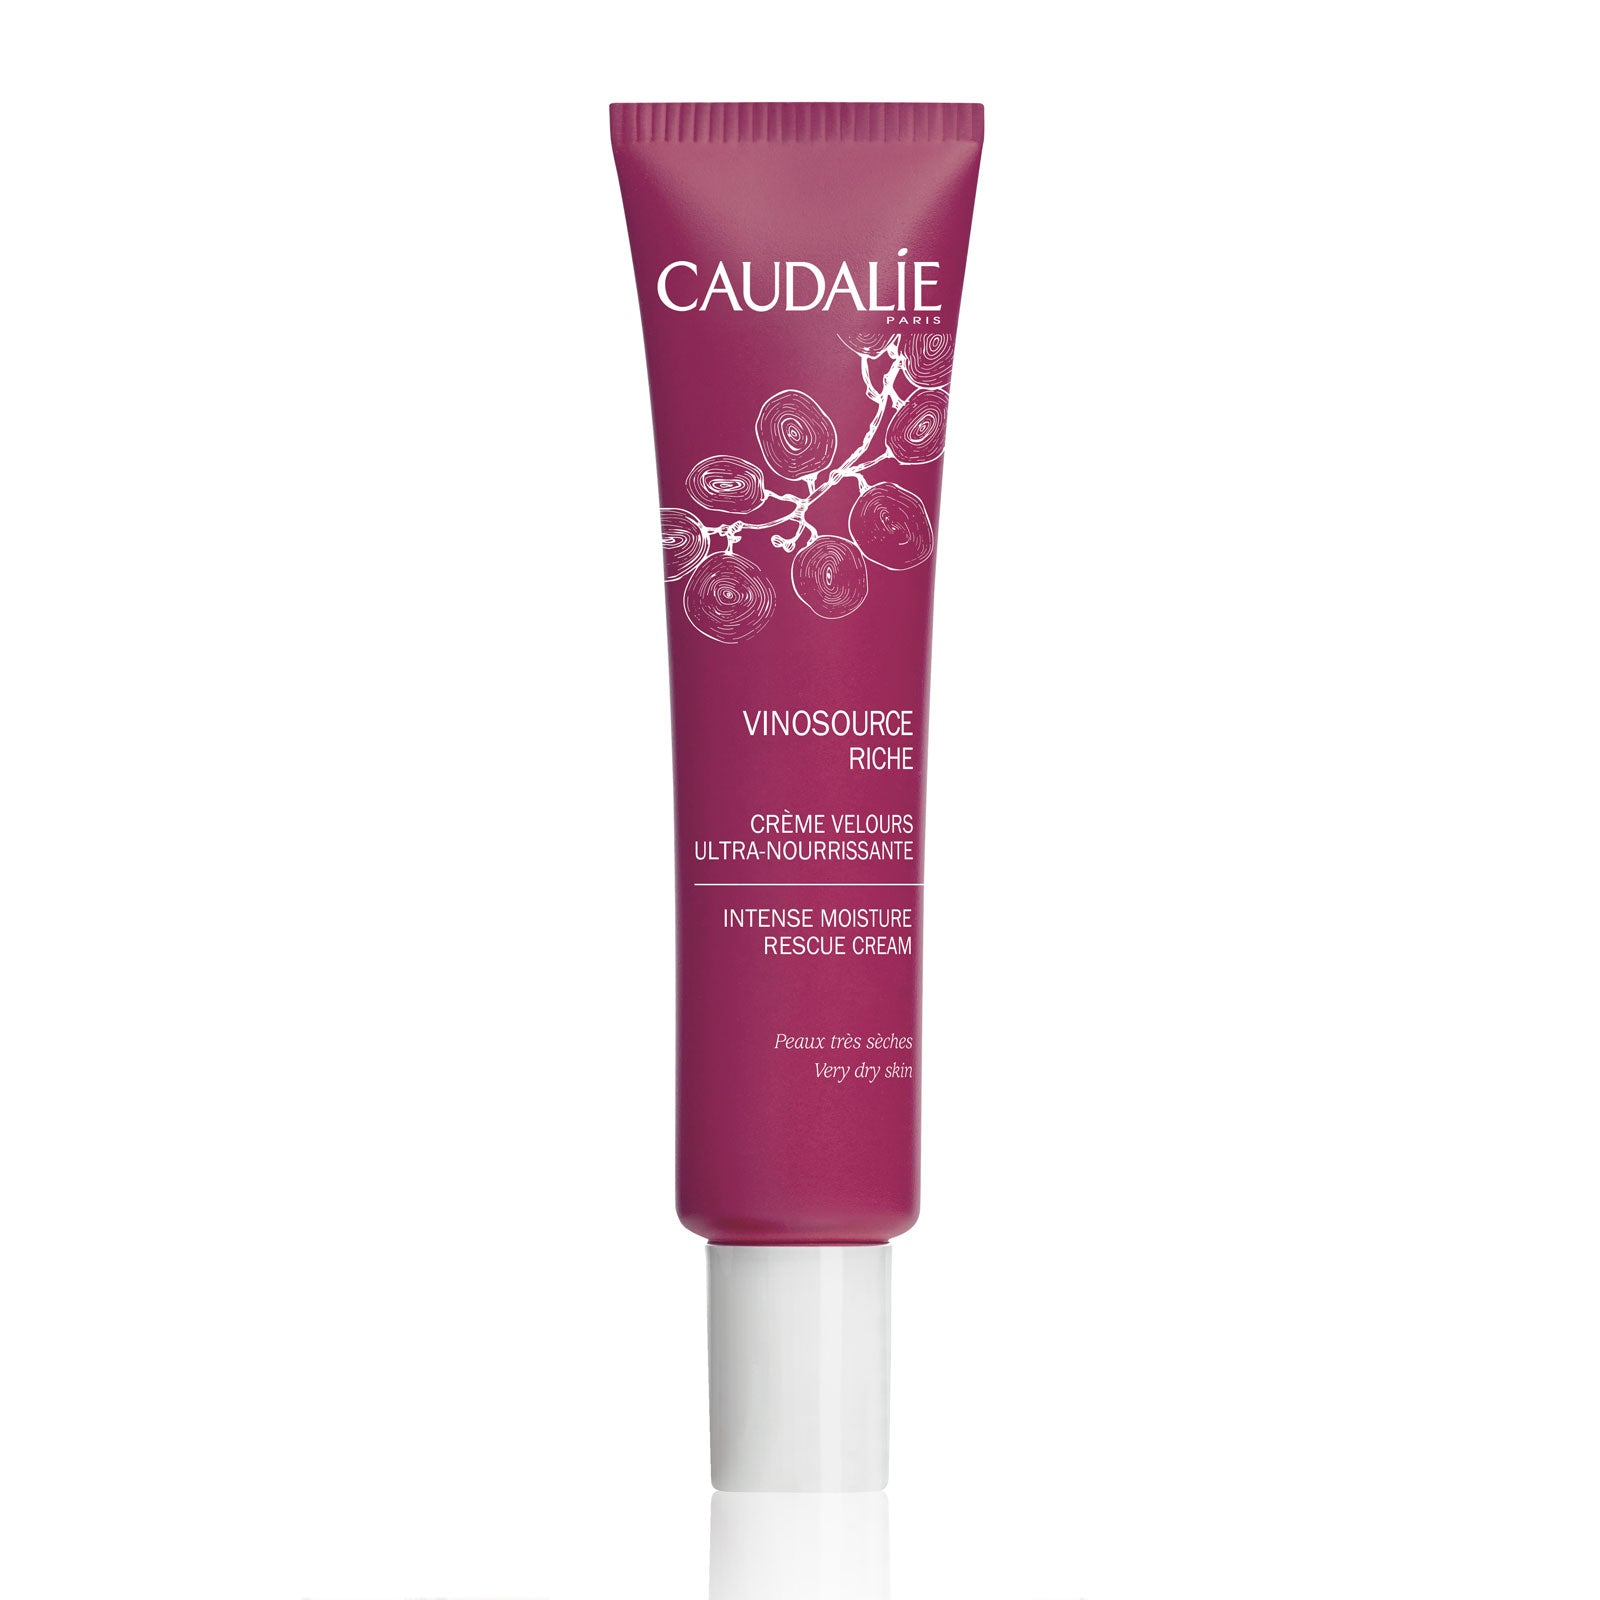 Caudalie Vinosource Intense Moisture Rescue Cream 40ml